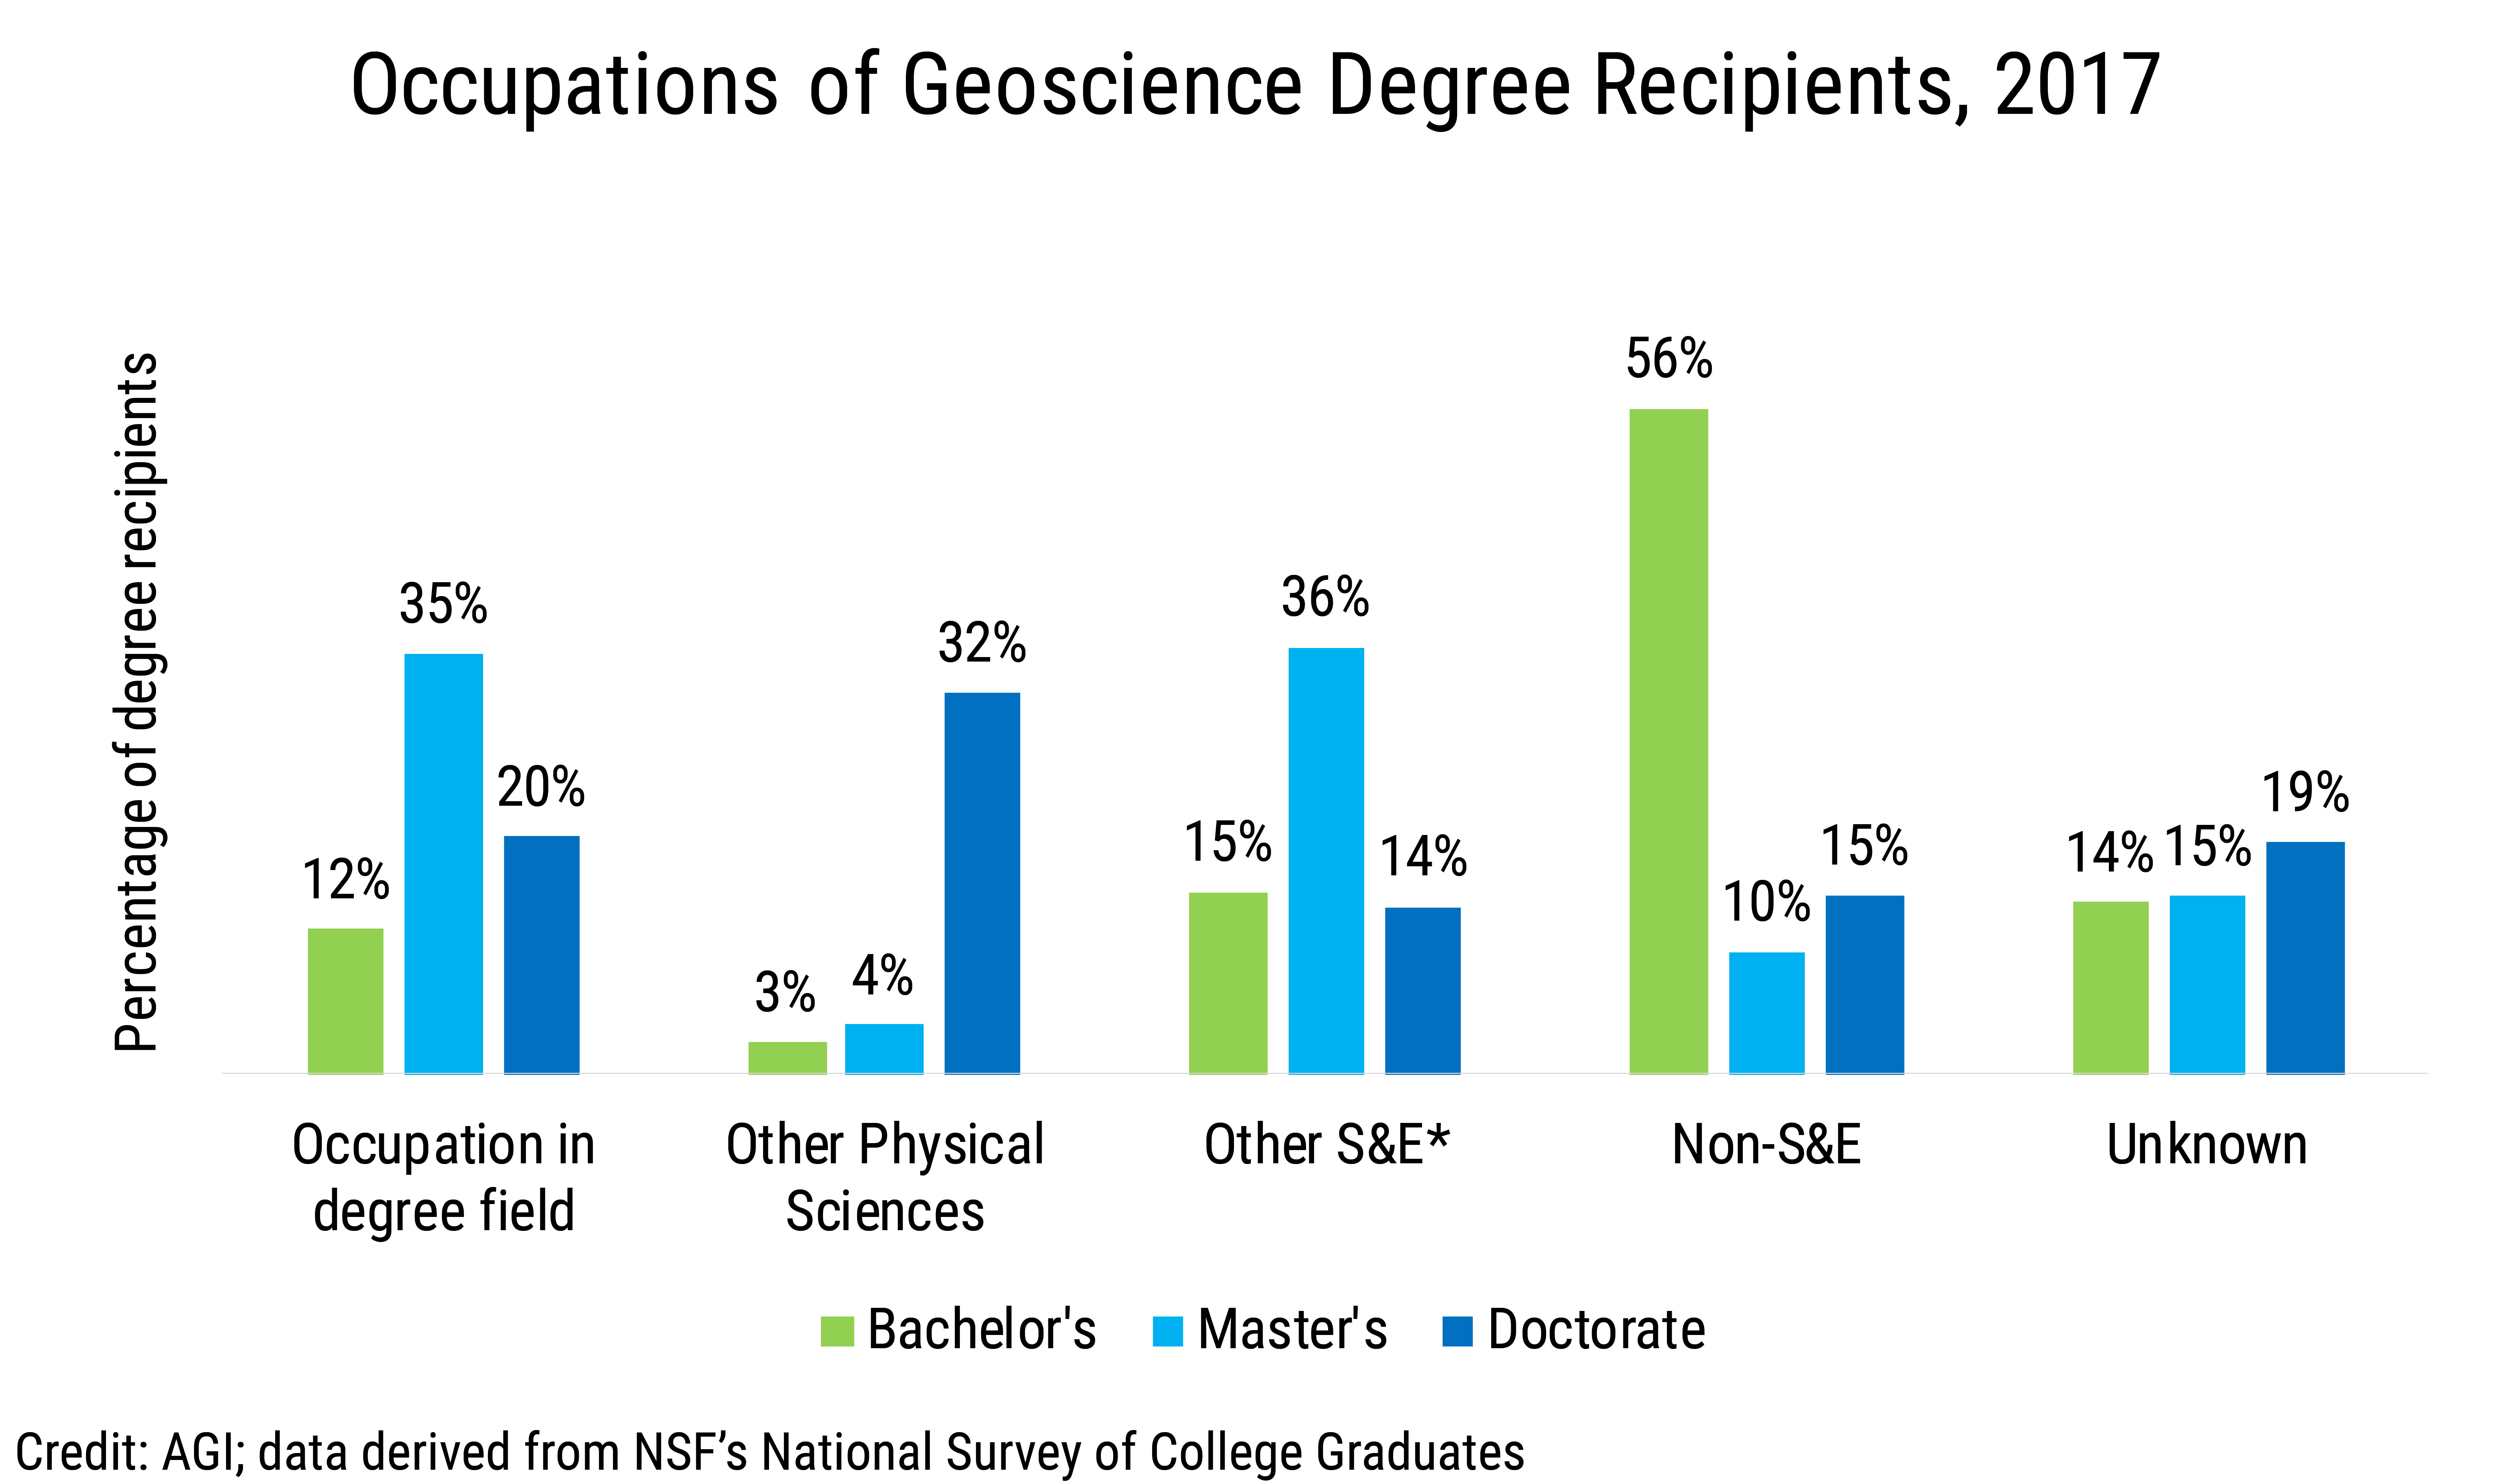 Data Brief 2019-013 chart01: Occupations of Geoscience Degree Recipients, 2017 (credit: AGI; data derived from NSF NSCG)